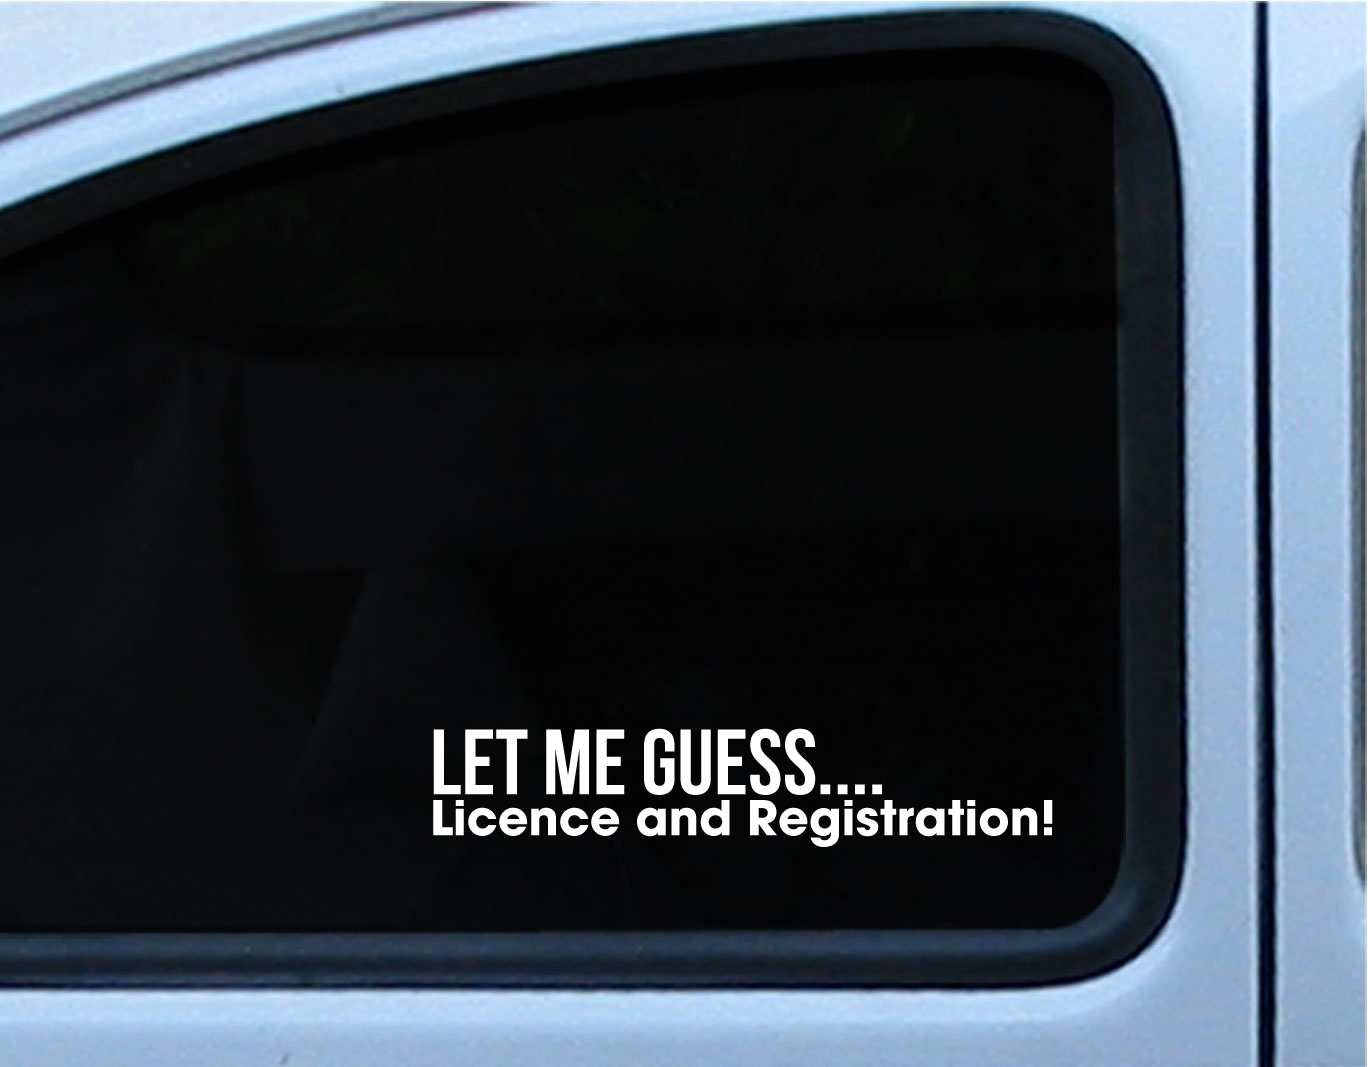 Jdm funny let me guess license and registration pull over decal sticker vinyl